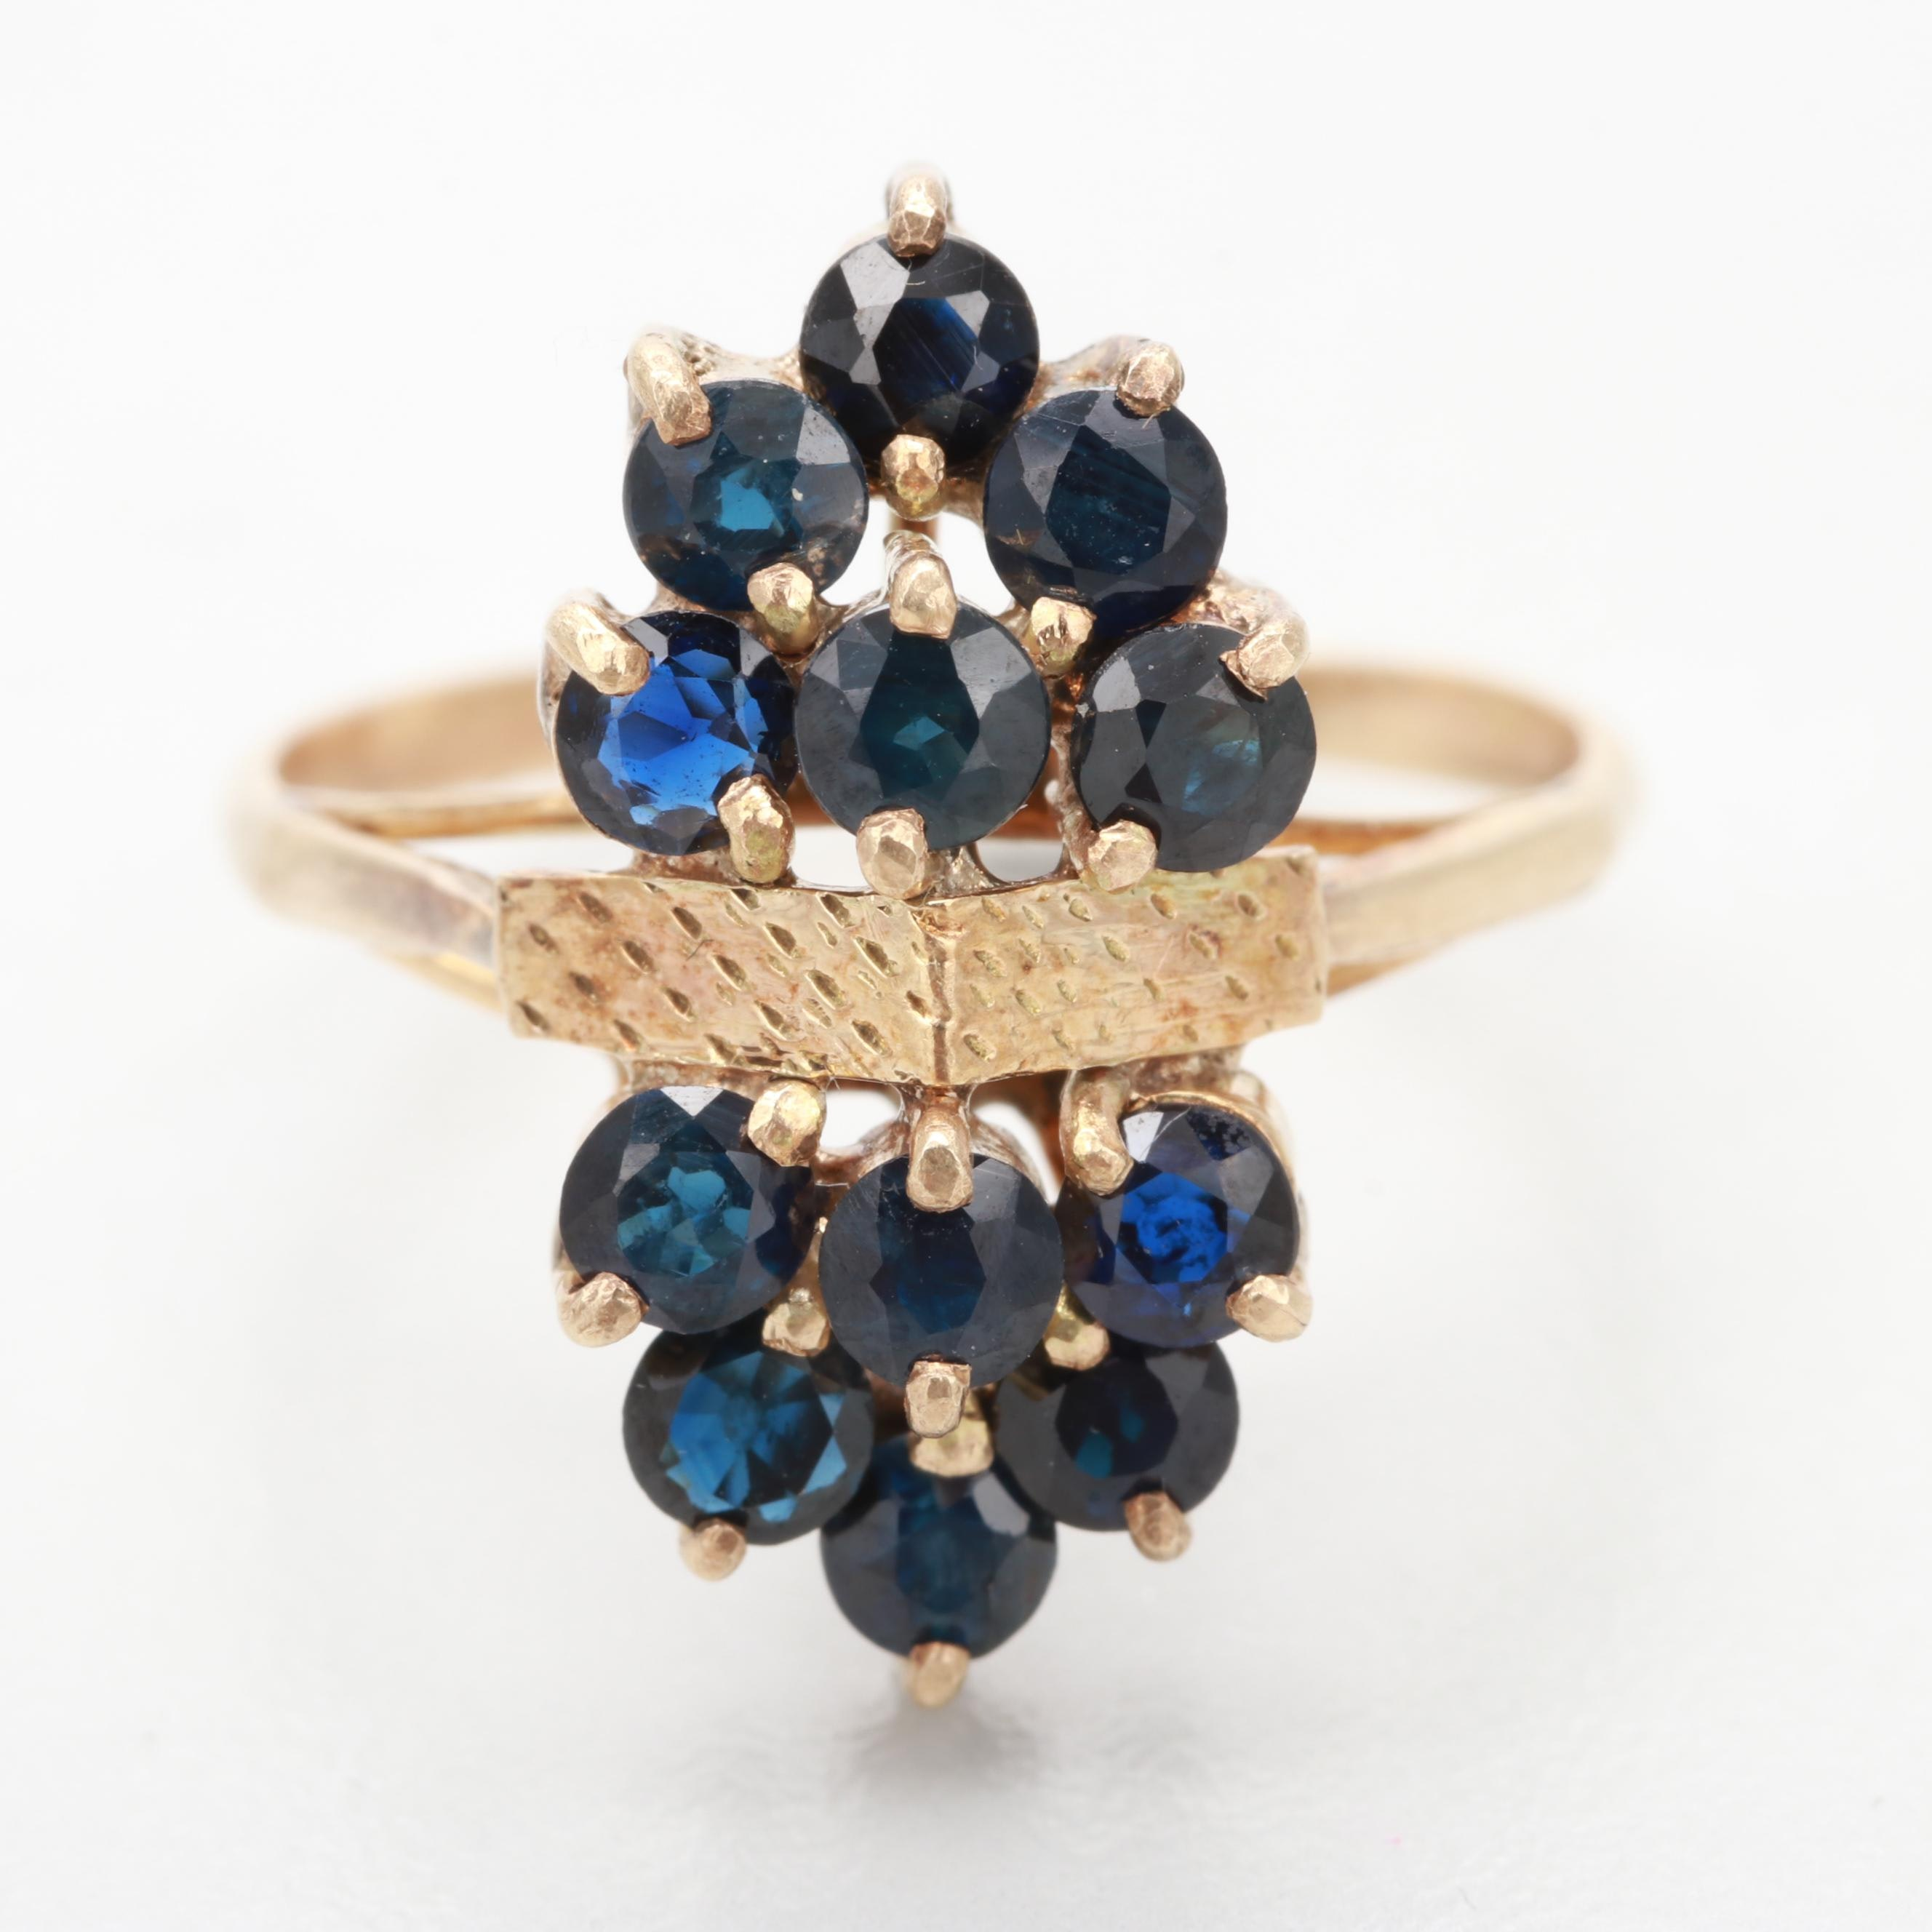 Vintage 10K Yellow Gold Blue Sapphire Ring